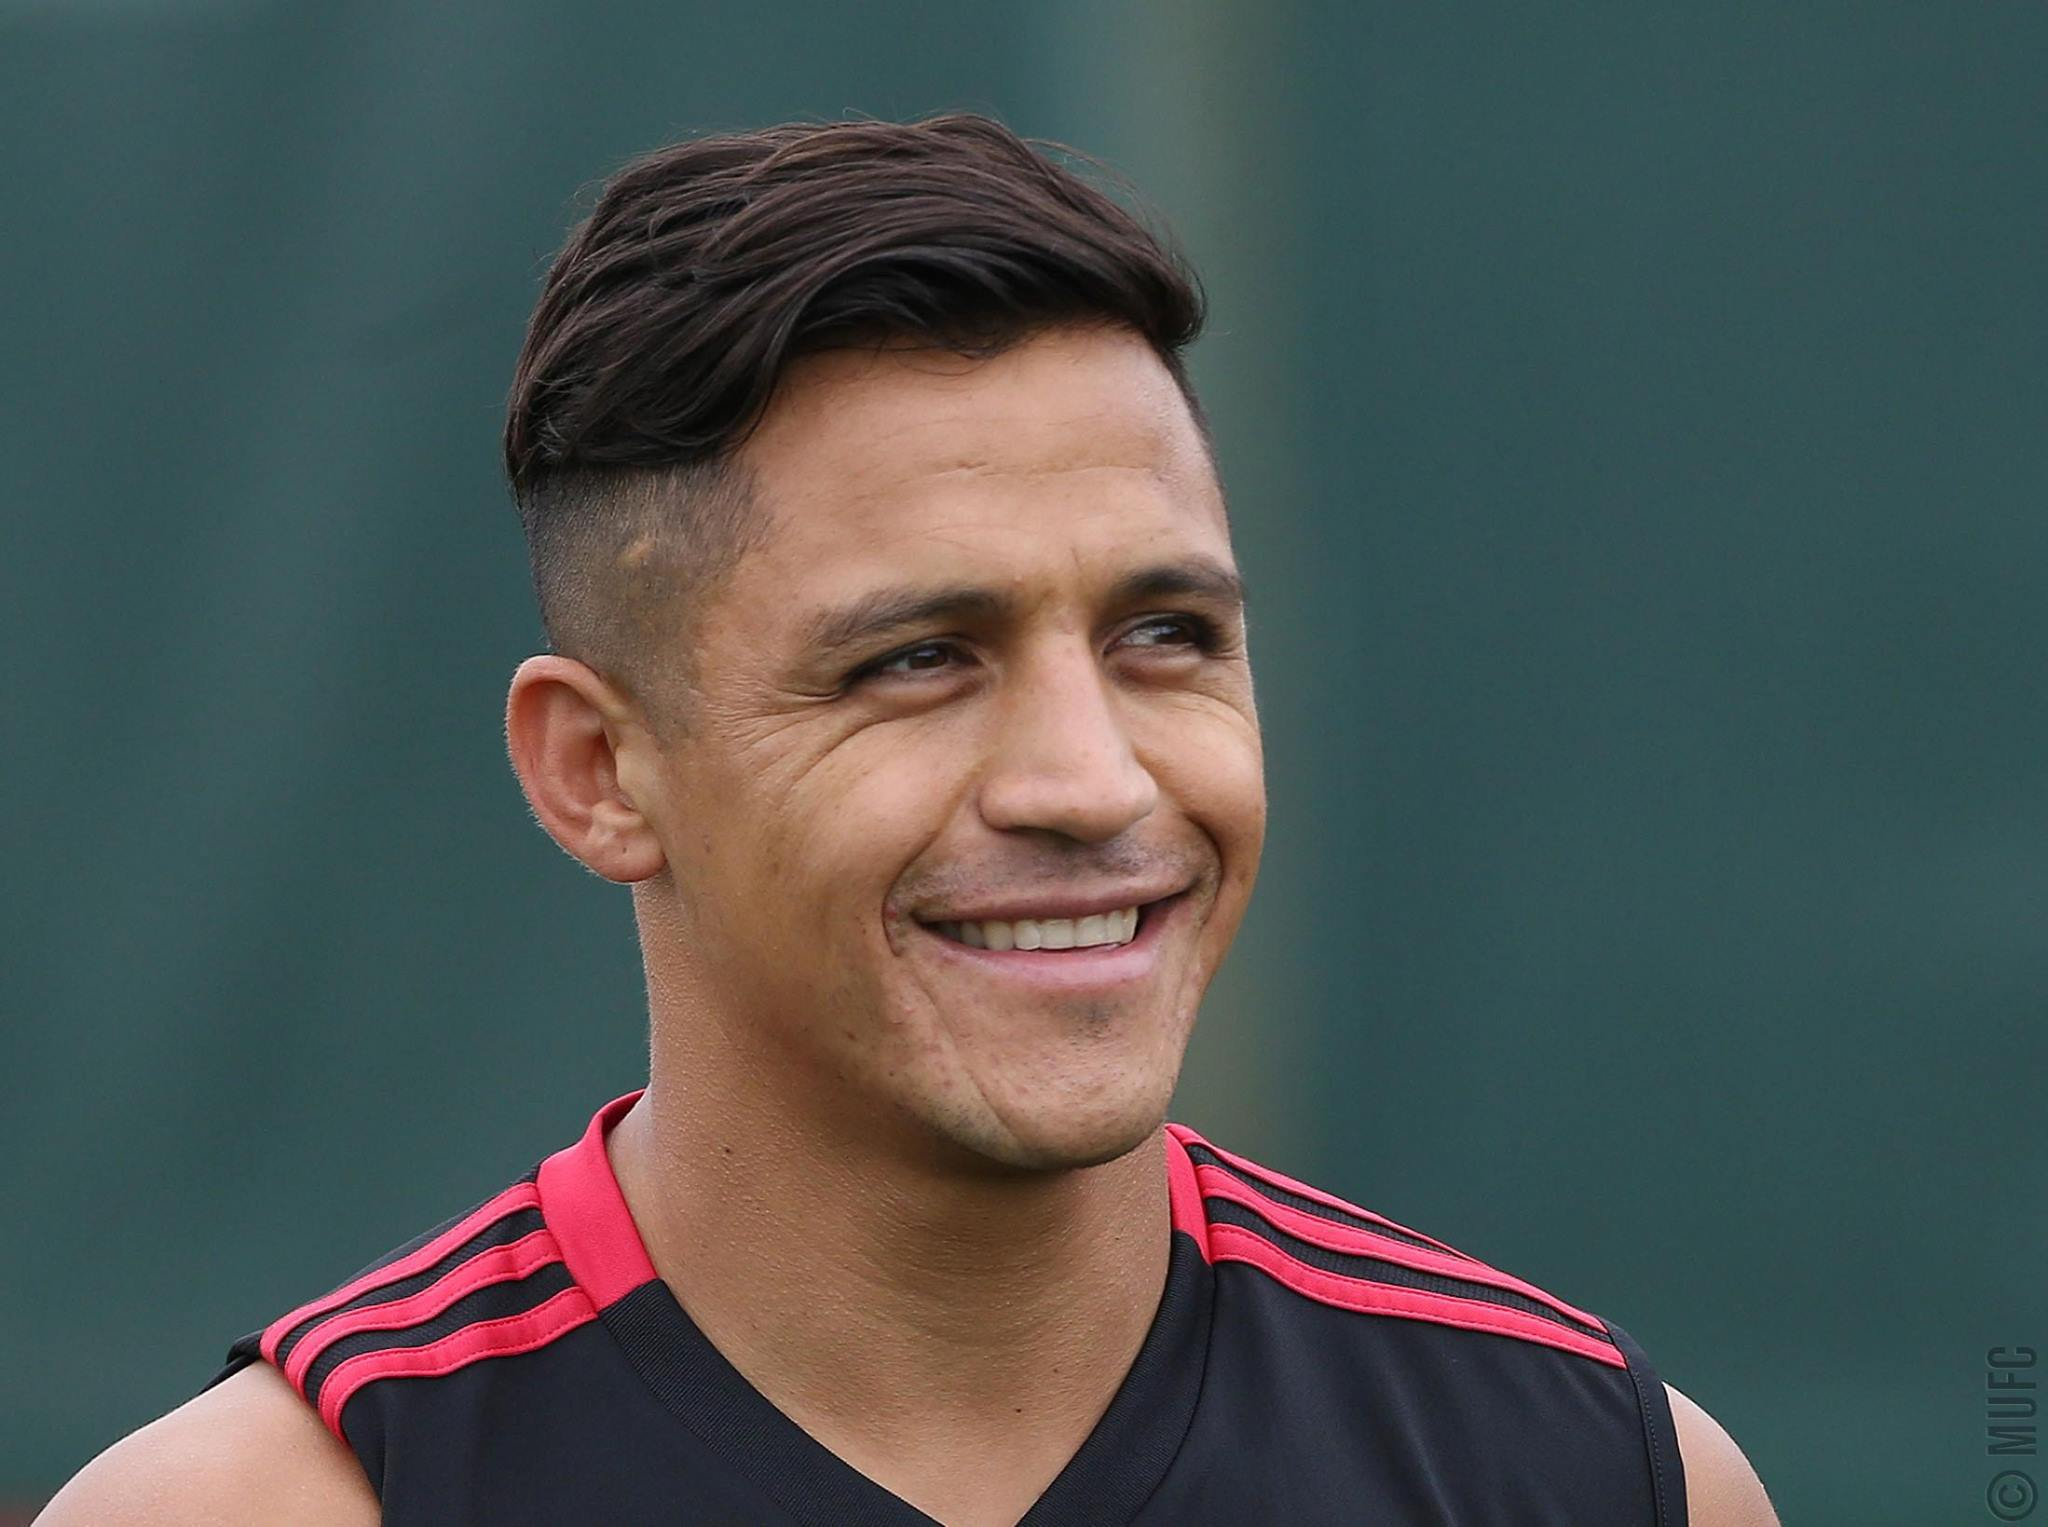 Alexis Sanchez, Fantasy Premier League, Premier League, Gameweek 1, FPL, Fantasy Football, FPL Tips, FPL Tricks, Manchester United F.C., Liverpool F.C., Alexis Sanchez, Roberto Firmino